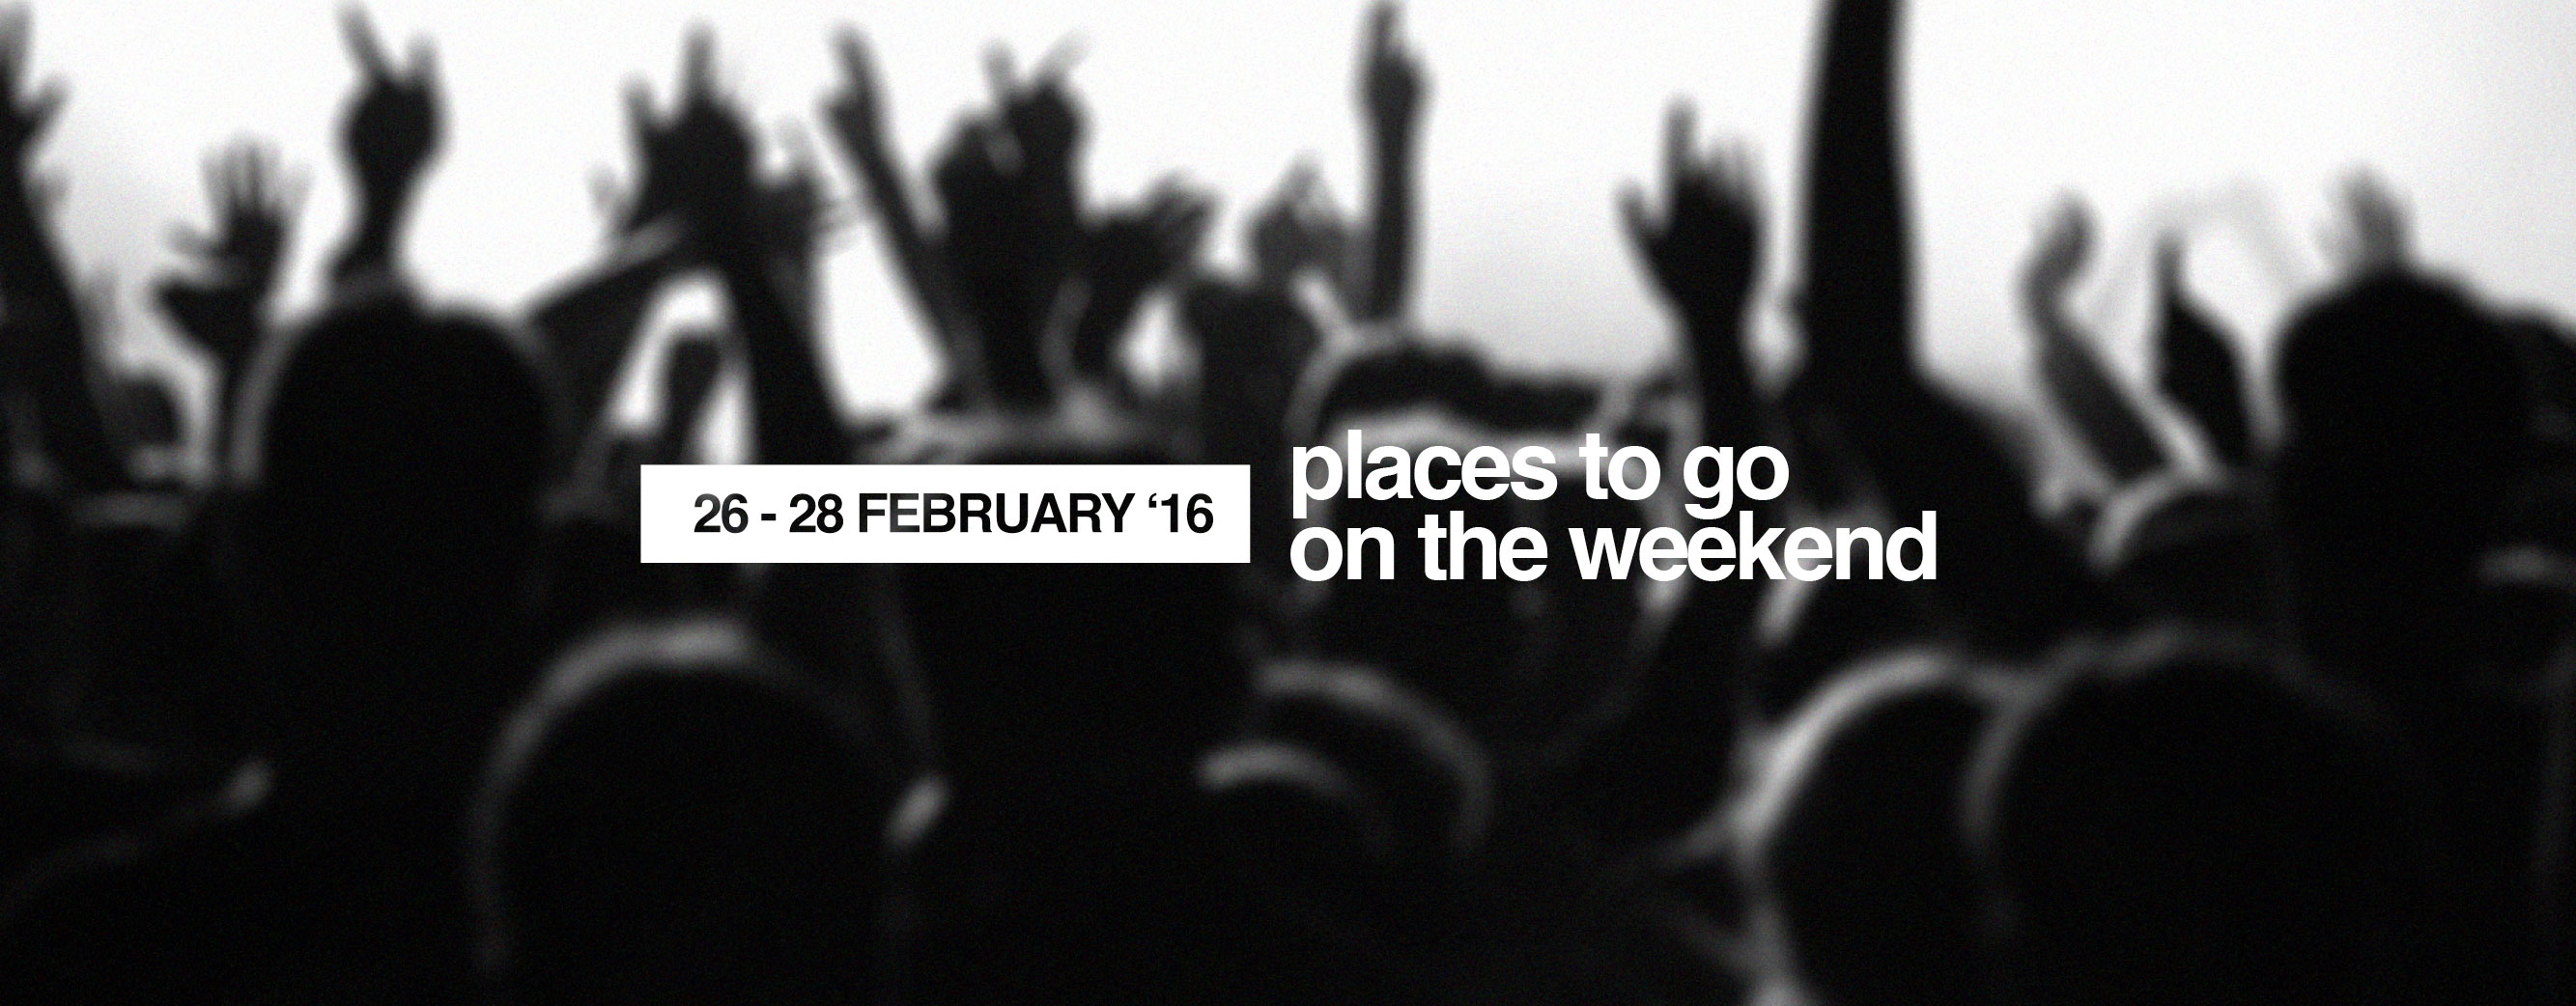 weekend_26-28-Feb